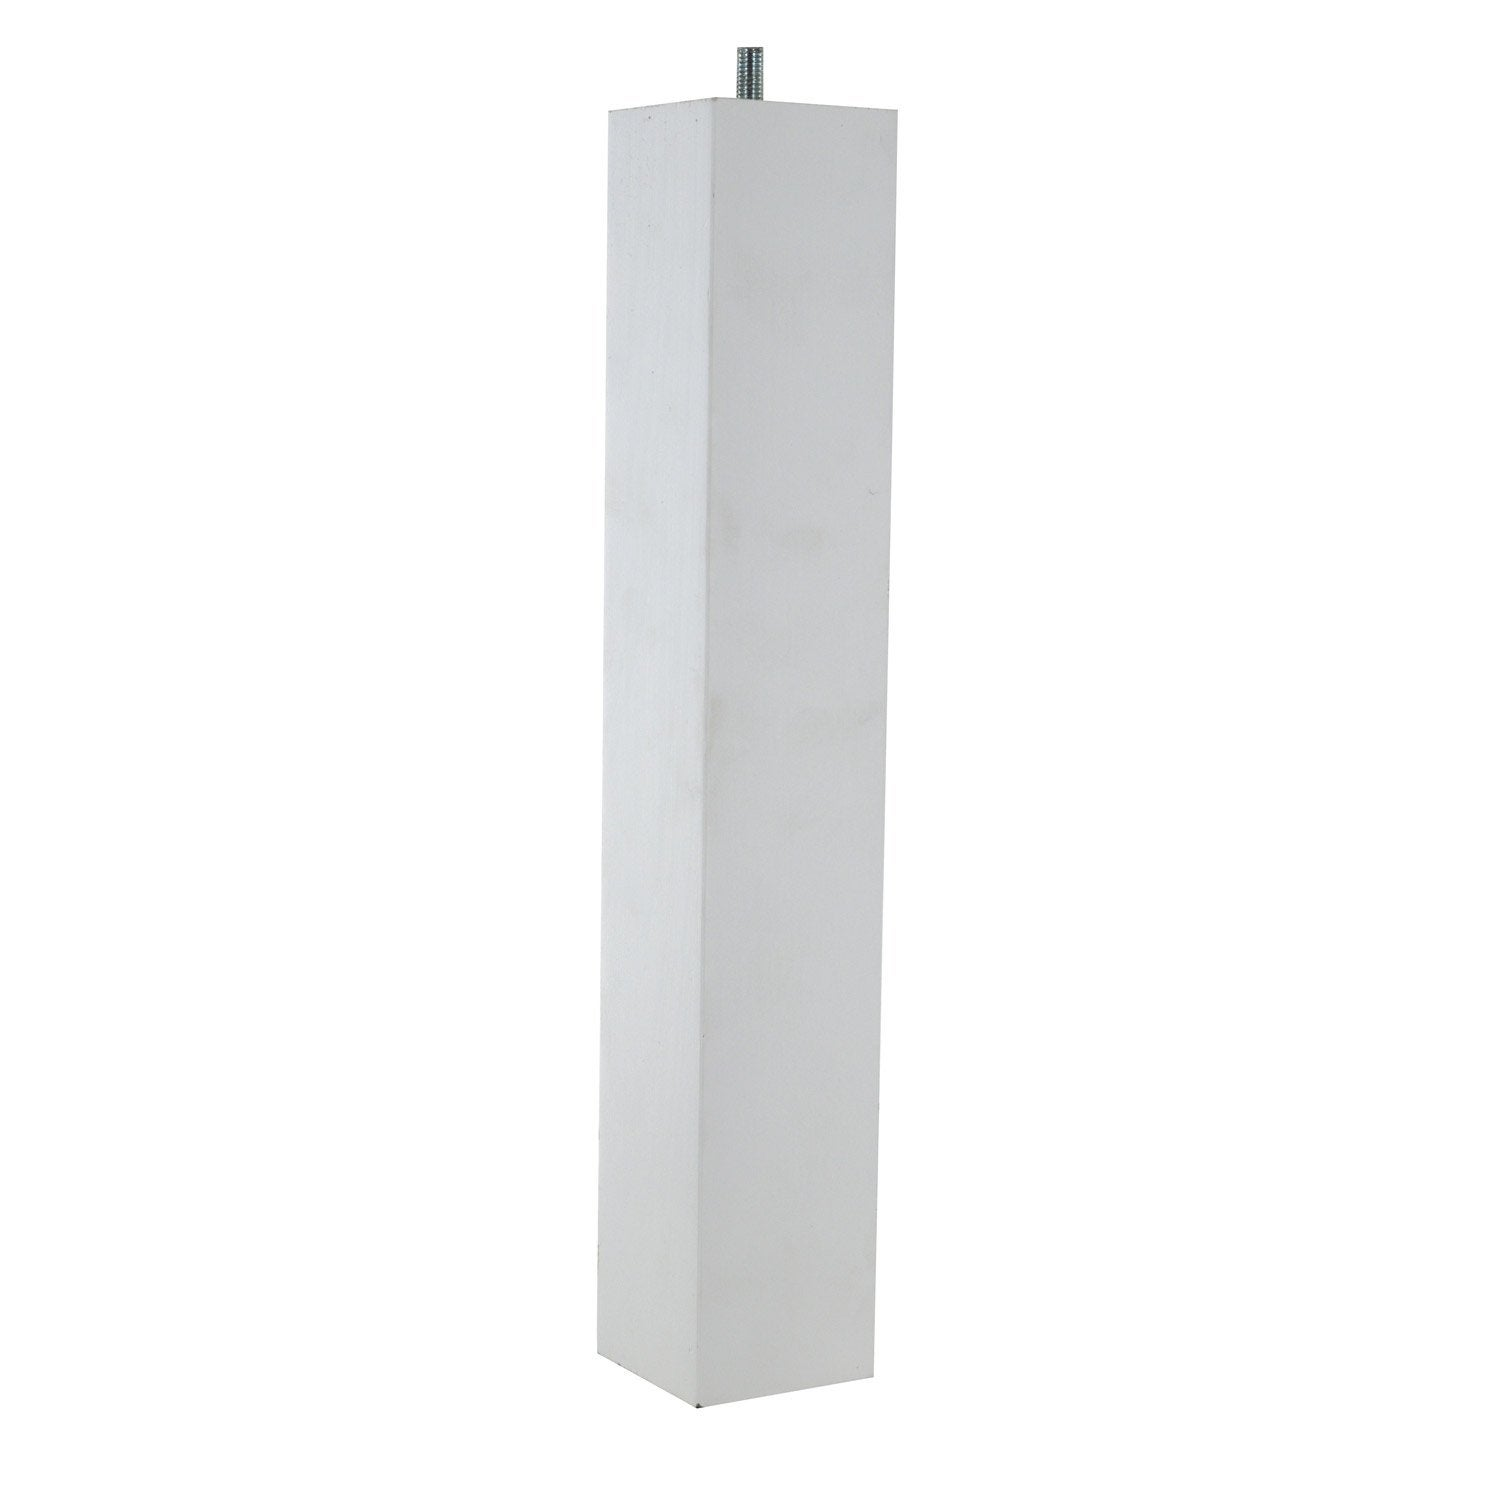 Pied de table basse carr fixe h tre laqu blanc 36 cm leroy merlin - Table basse carre laque blanc ...